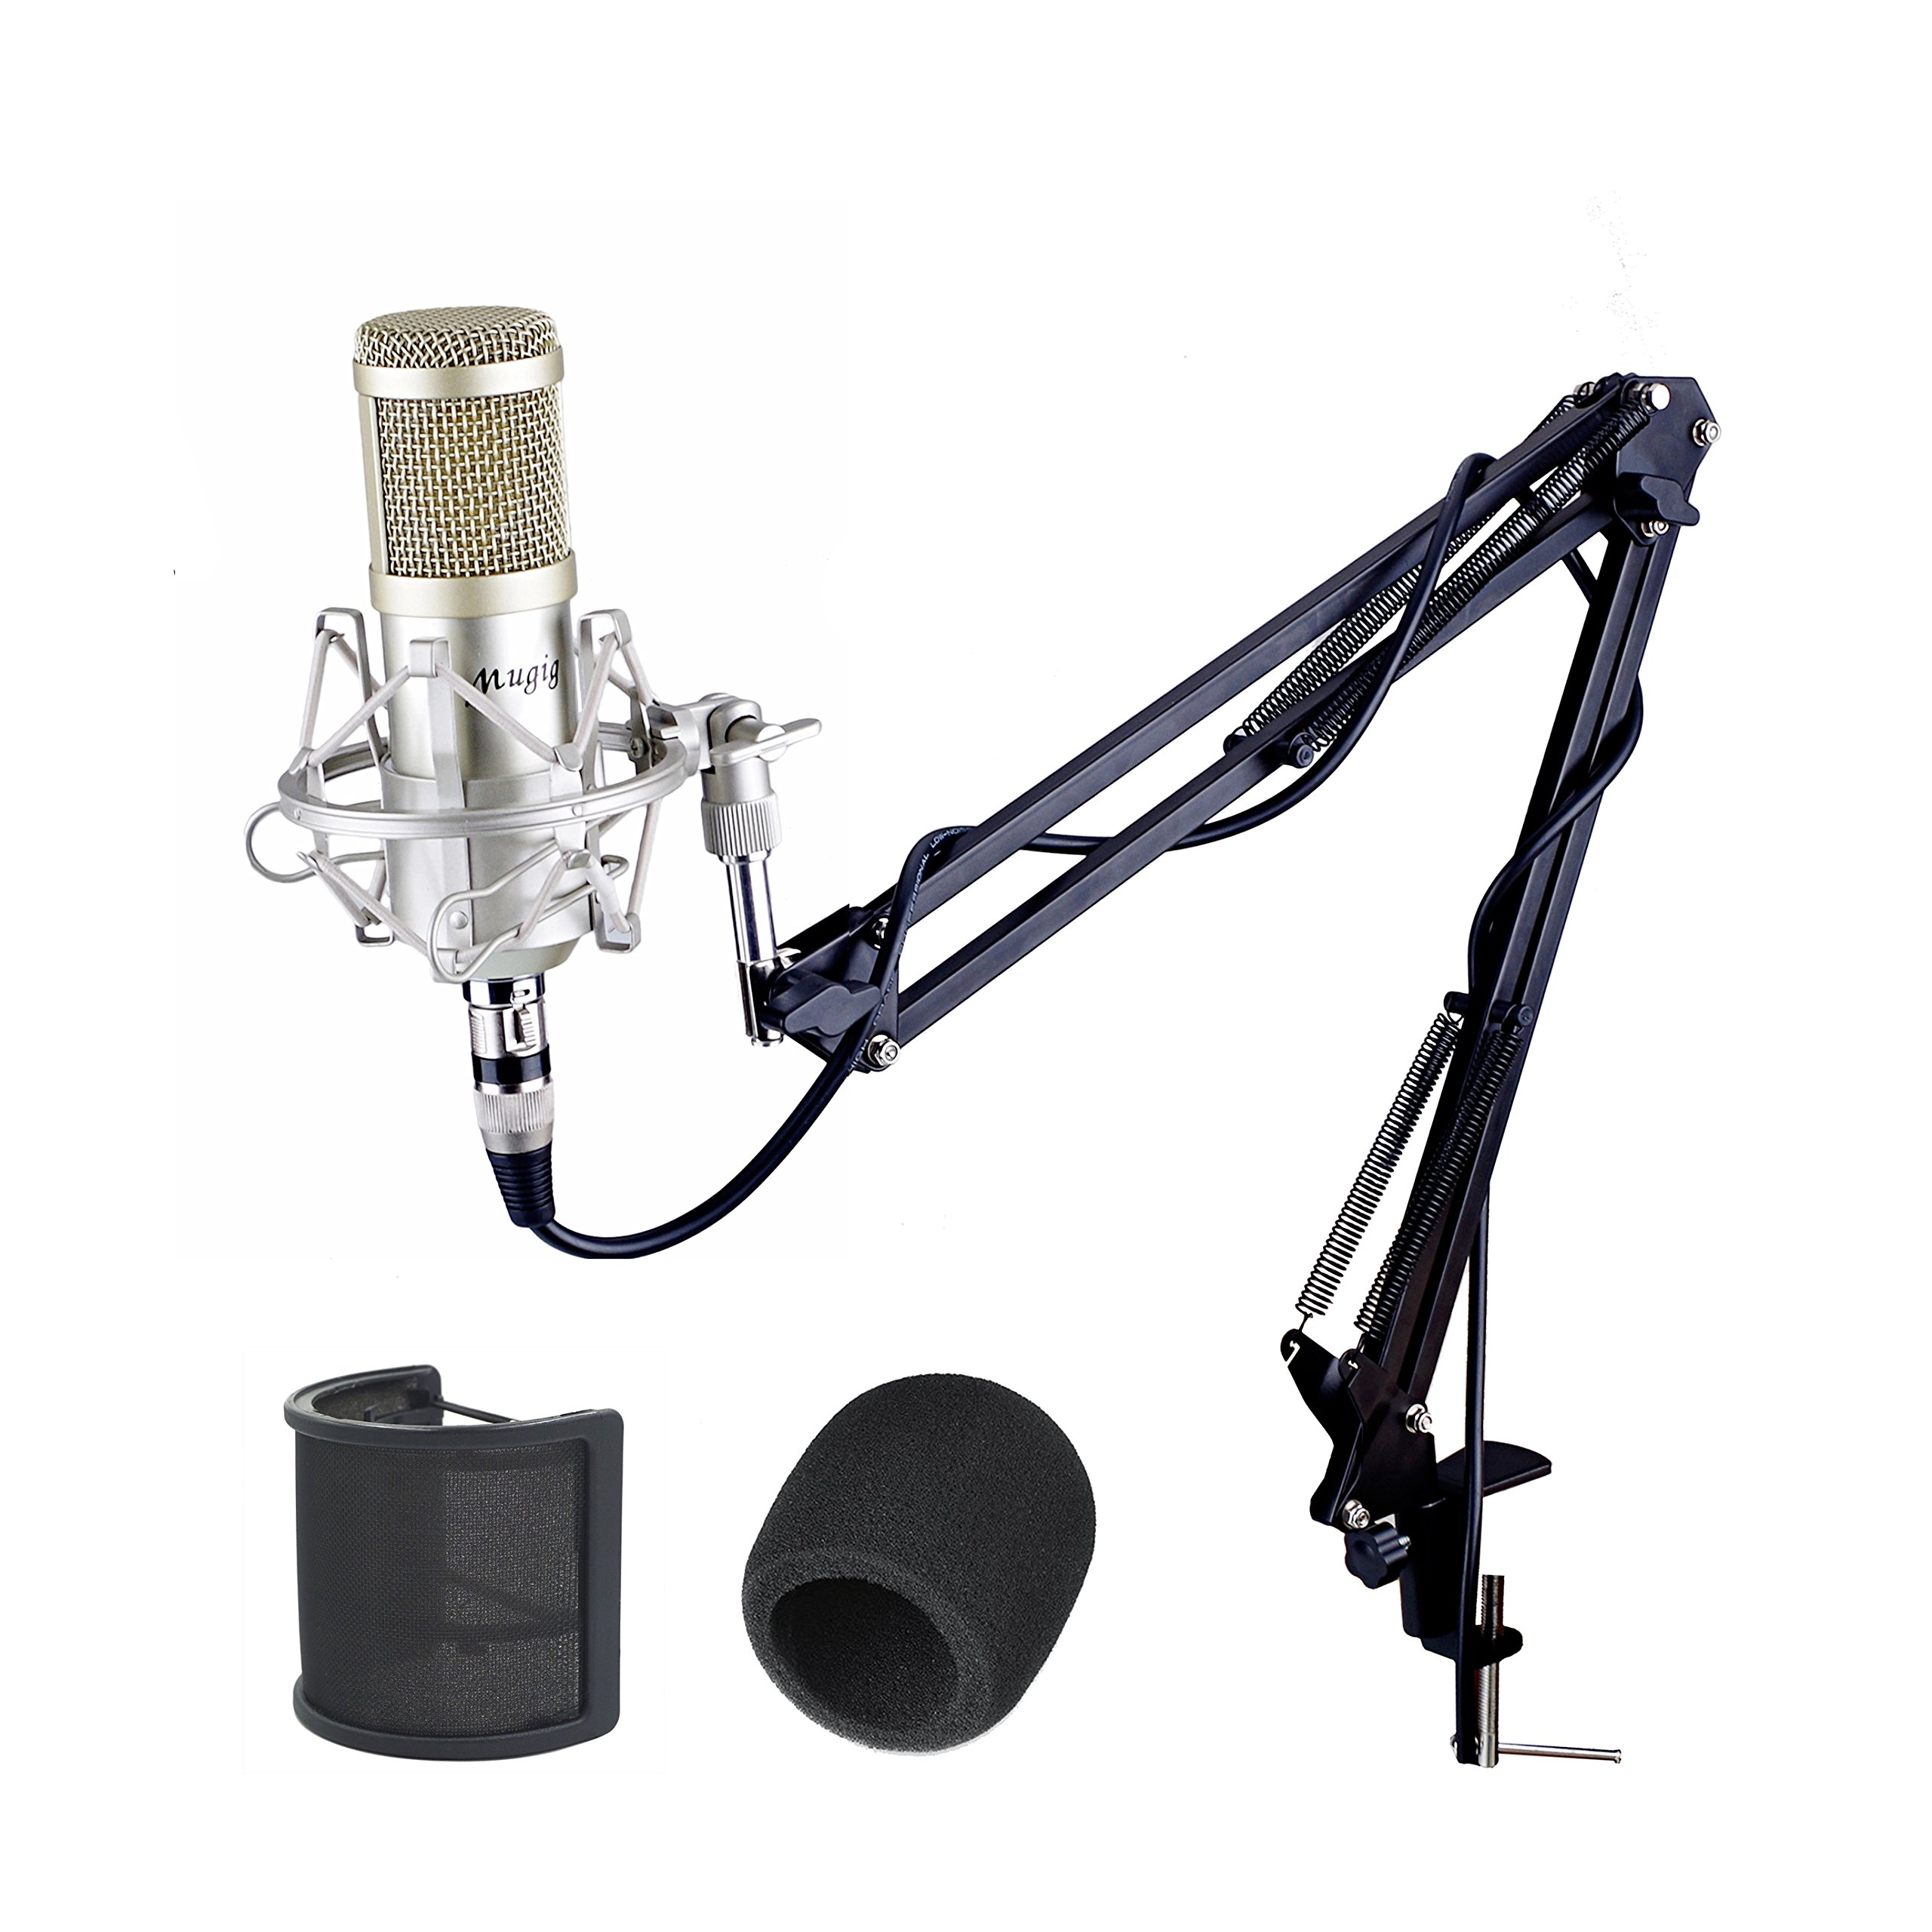 Mugig Condenser Microphone with Microphone Scissor Arm Stand/3.5mm XLR Cable/Shock Mount/Pop Filter for Professional Studio Recording Podcasting Broadcasting, Recording, Singing, Games by Mugig